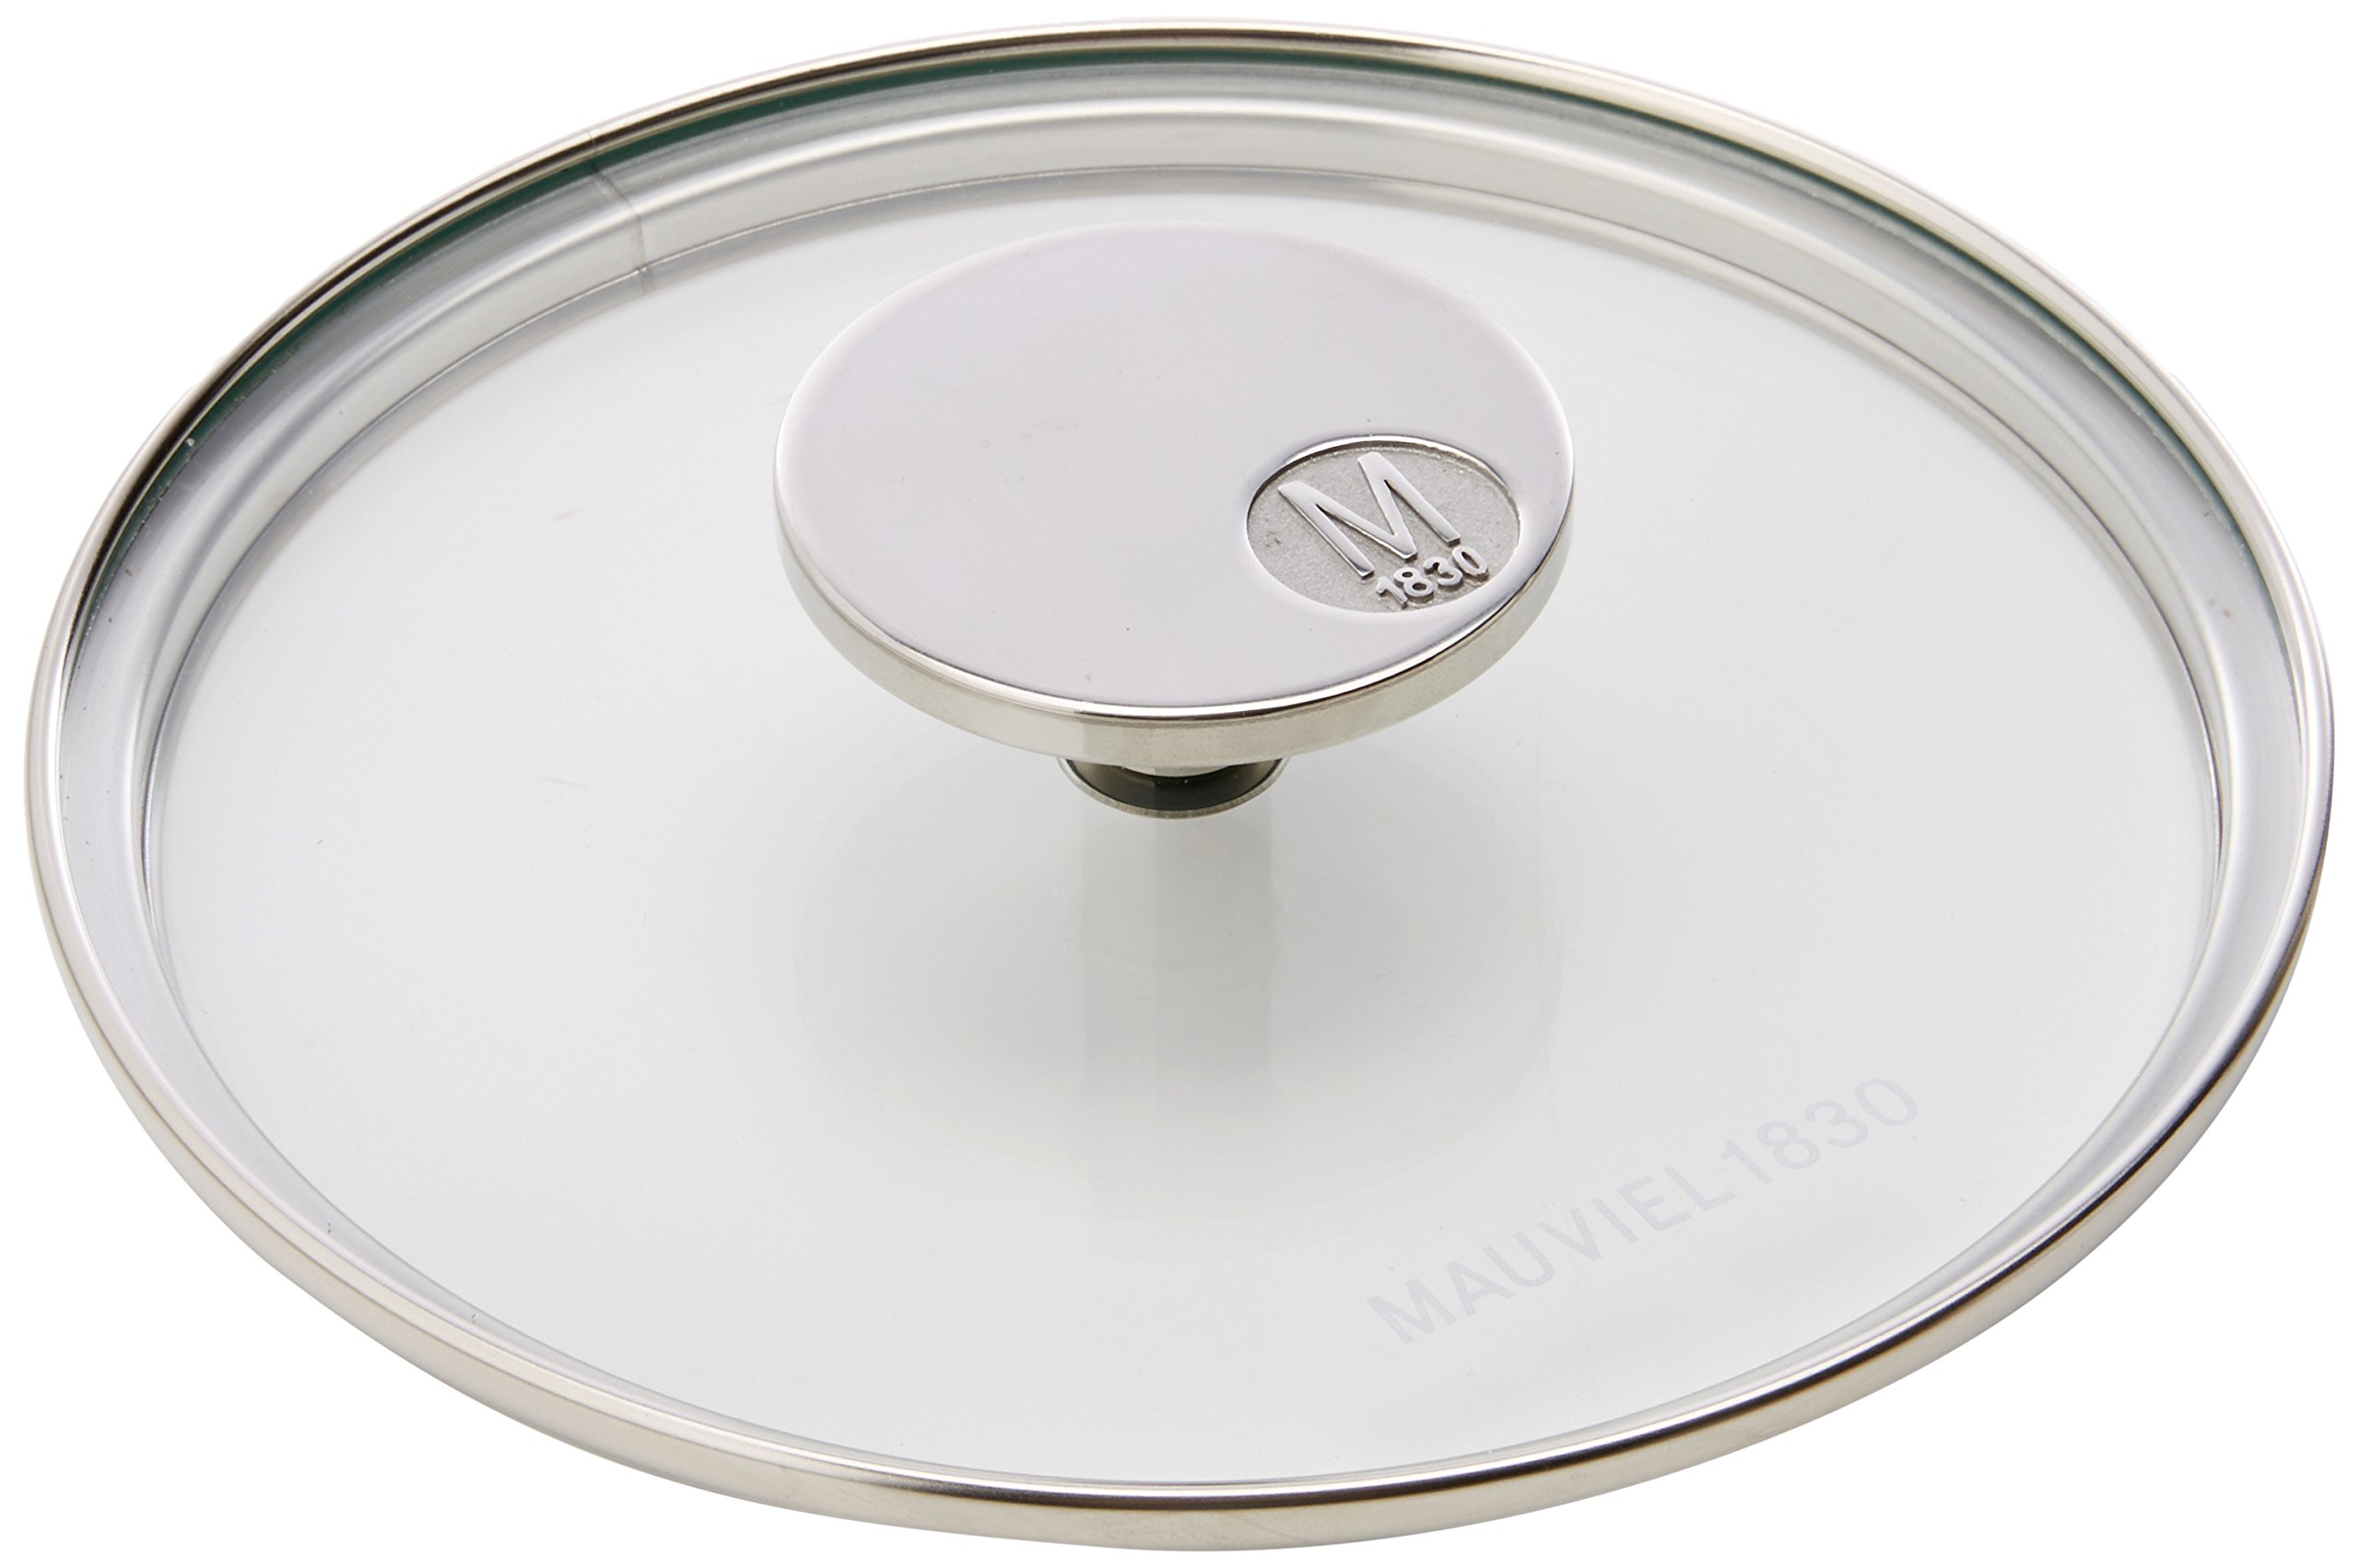 Mauviel Made In France M'360 5318.16 6.3-Inch Glass Lid with Cast Stainless Steel